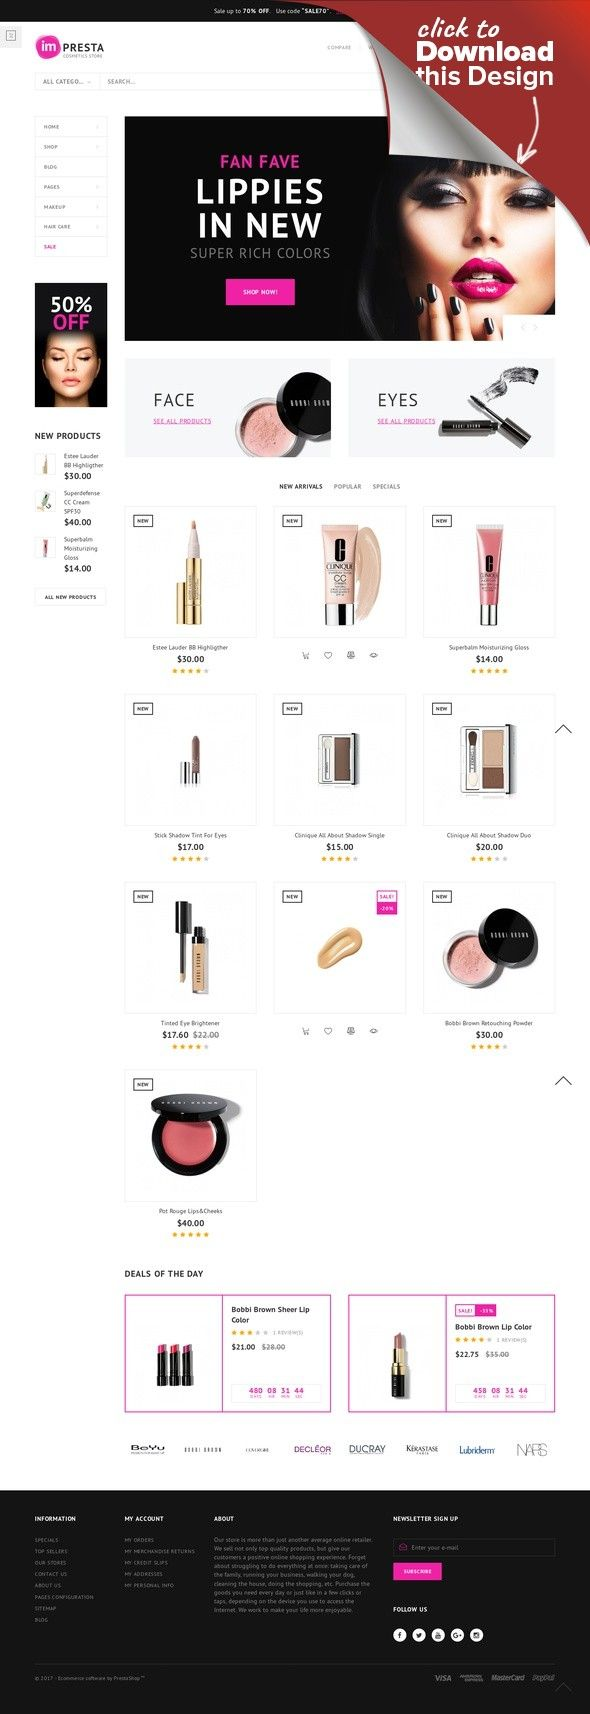 Impresta - Cosmetics Store PrestaShop Theme E-commerce Templates, PrestaShop Themes, Fashion & Beauty, Beauty Templates, Cosmetics Store Templates Are you looking for a beautiful template for you cosmetics online stop? Cosmetics store ImPresta will surely meet all your desires to create a cosmetics store, beauty shop, natural makeup store, or...